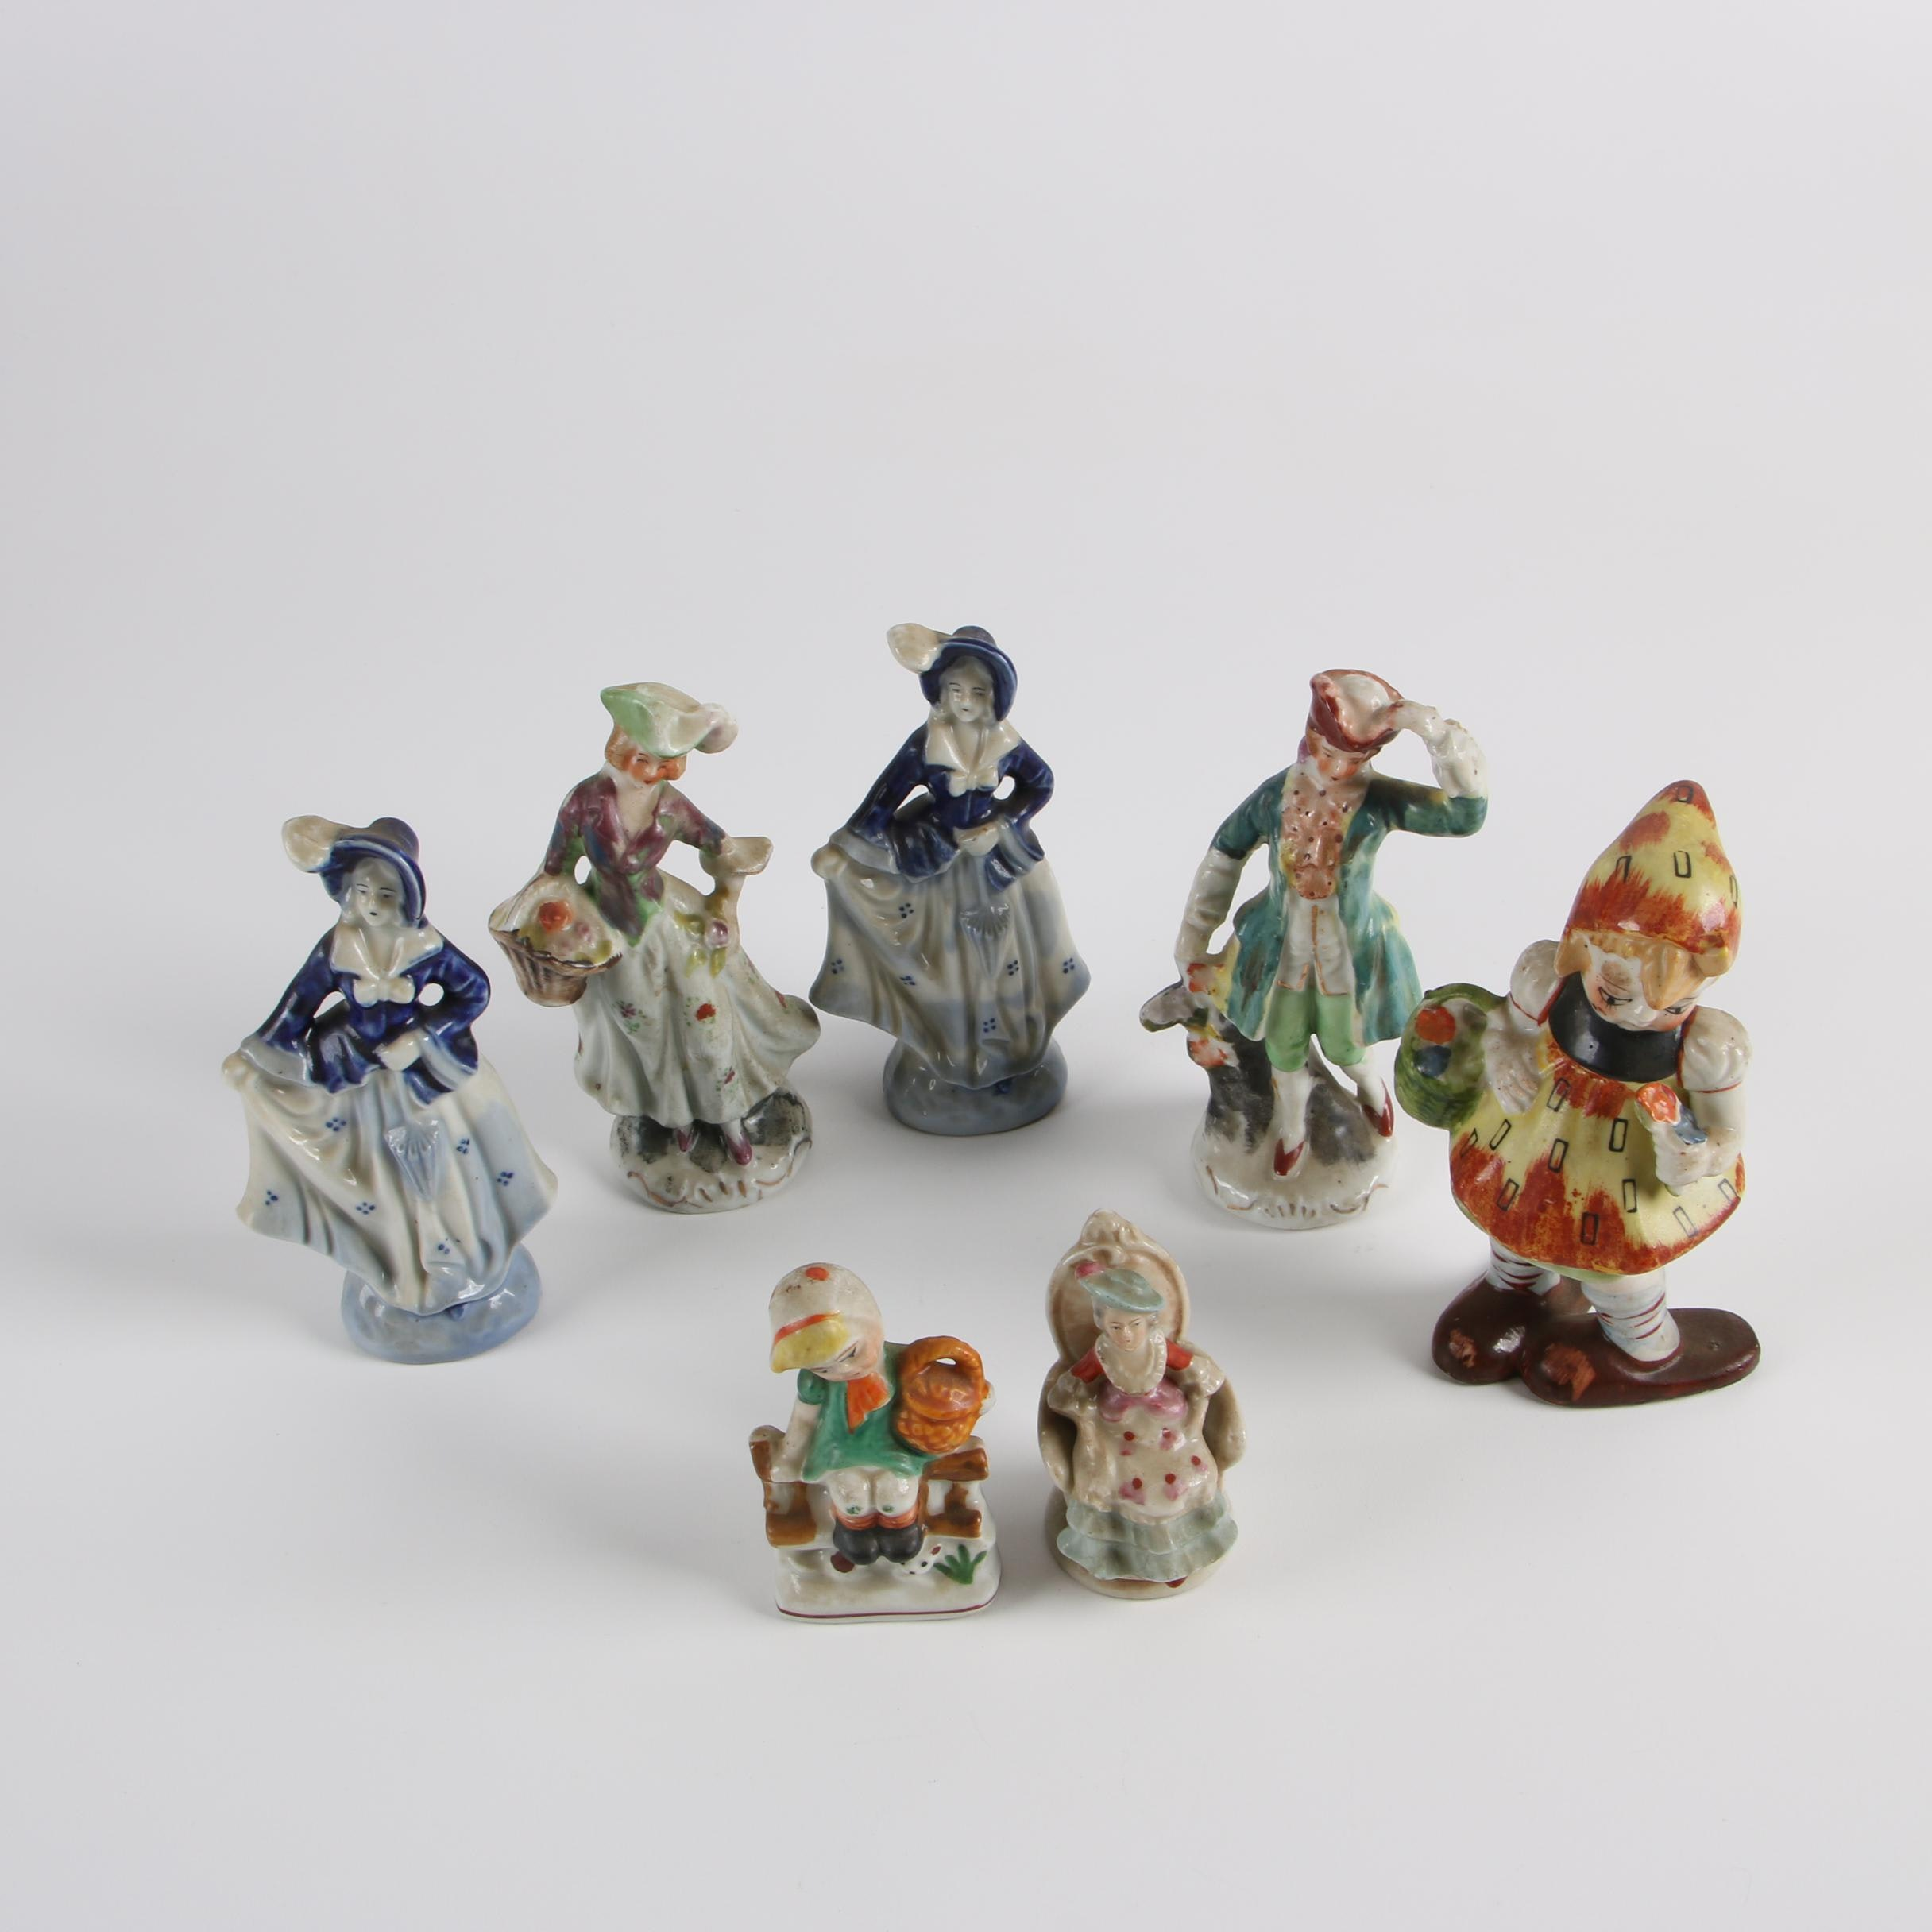 Vintage Occupied Japan Porcelain Figurines